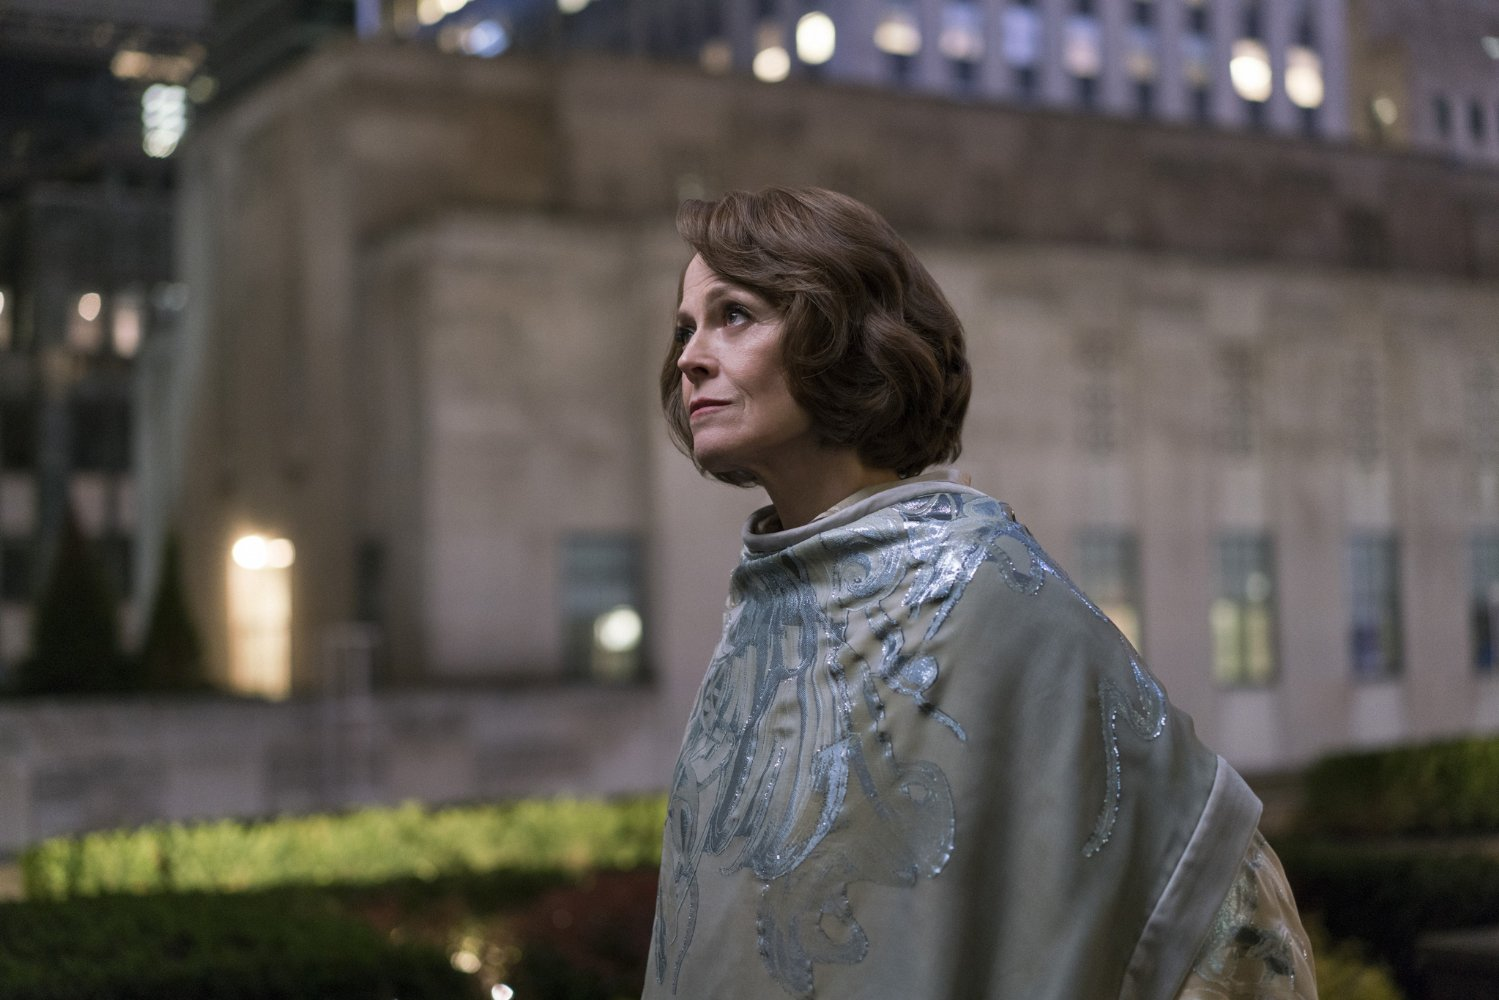 Who is Sigourney Weaver playing in The Defenders?